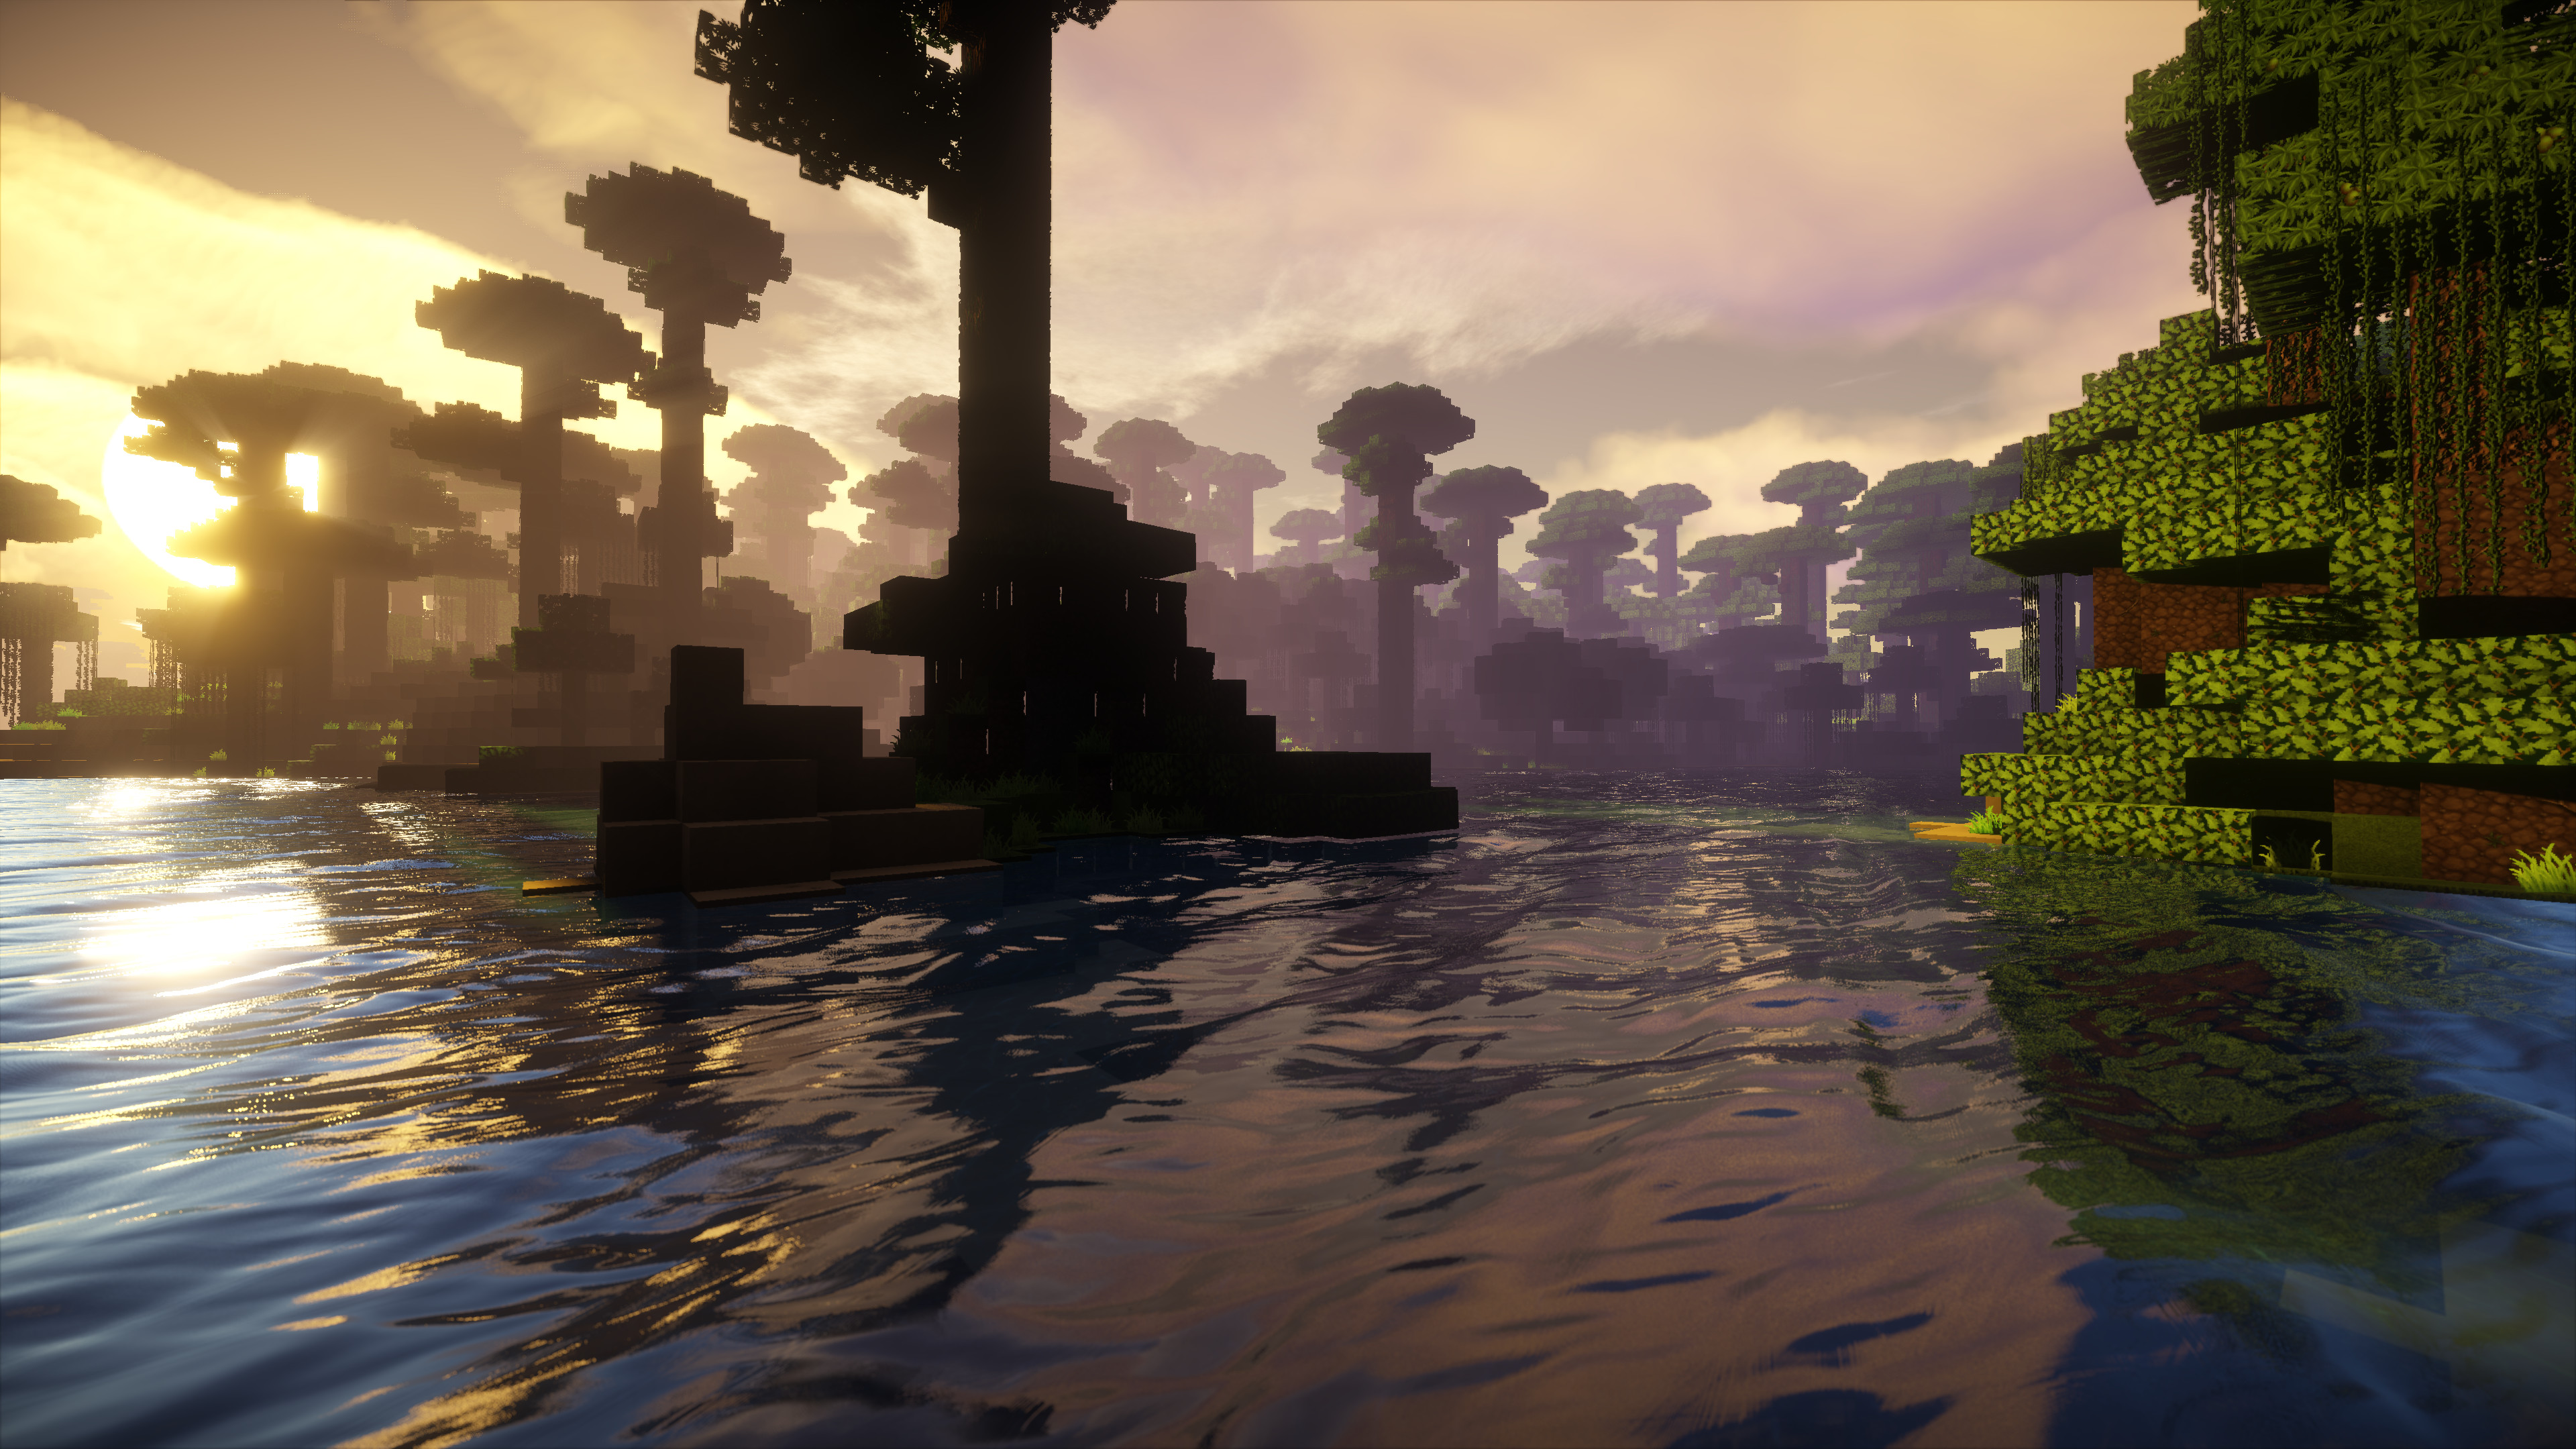 Minecraft Shaders Wallpapers Hd For Windows 10: HD Wallpapers Of Minecraft (78+ Images